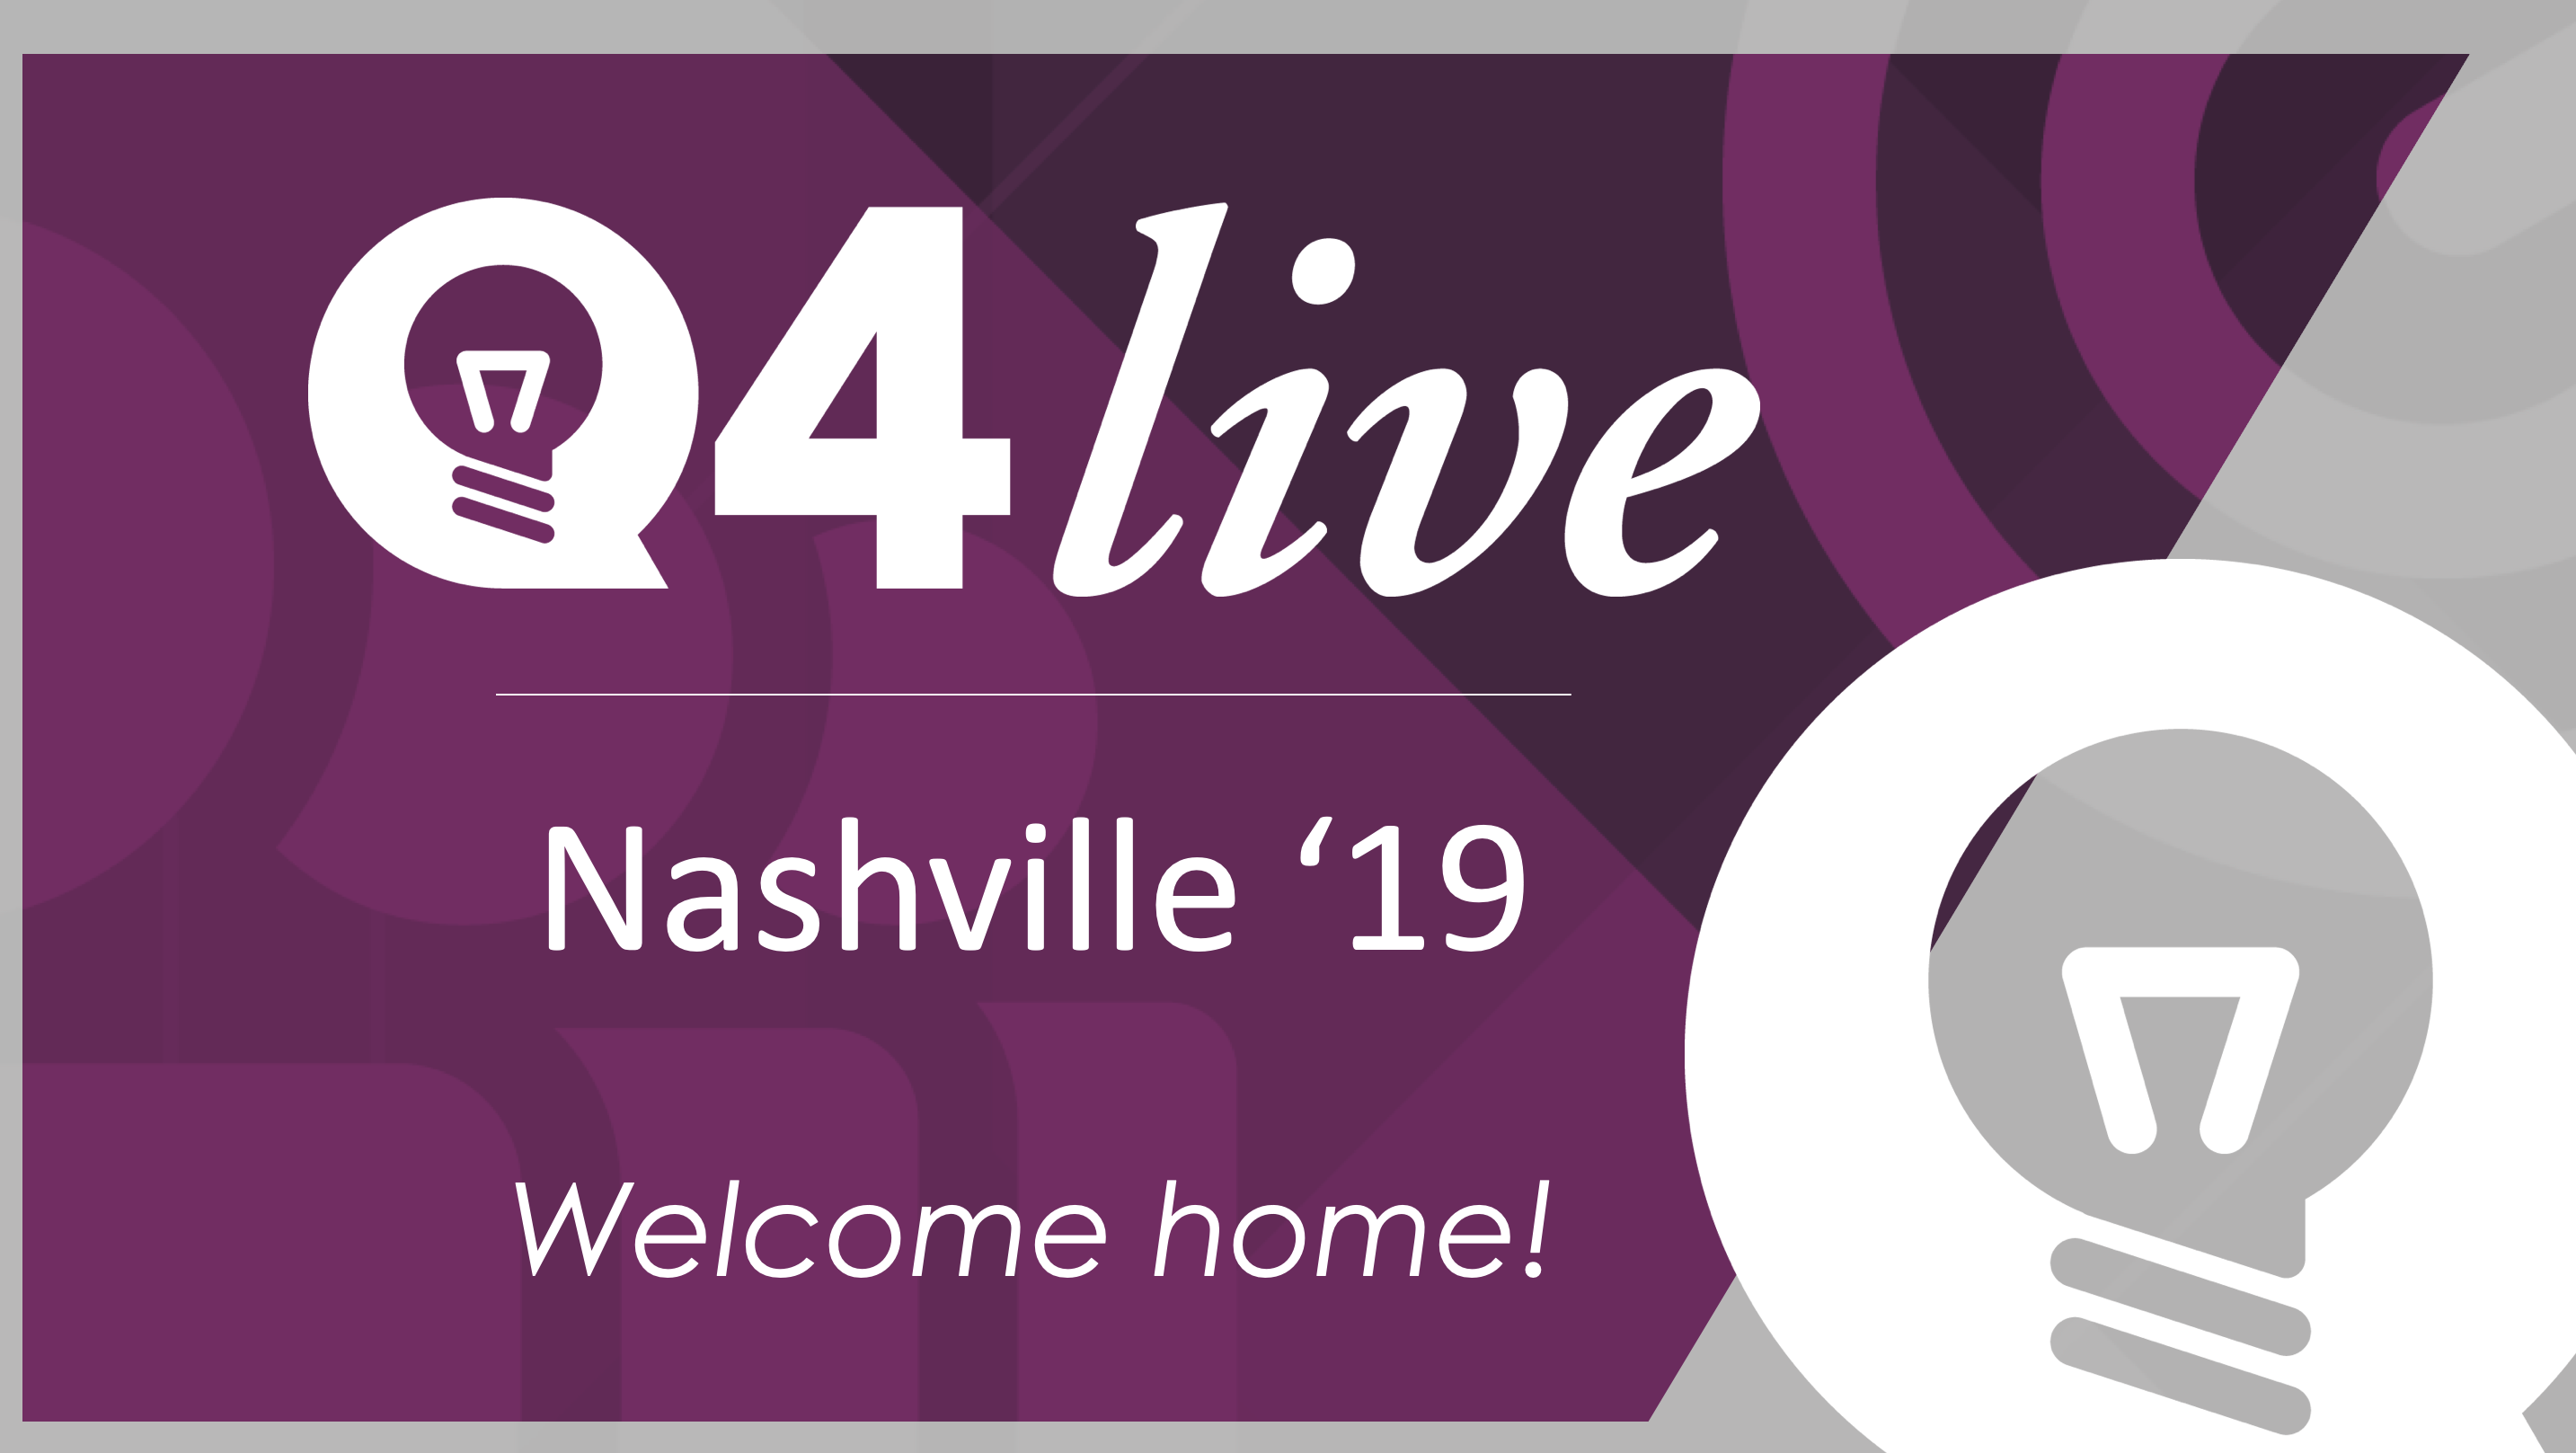 Top Takeaways from Q4Live in Nashville